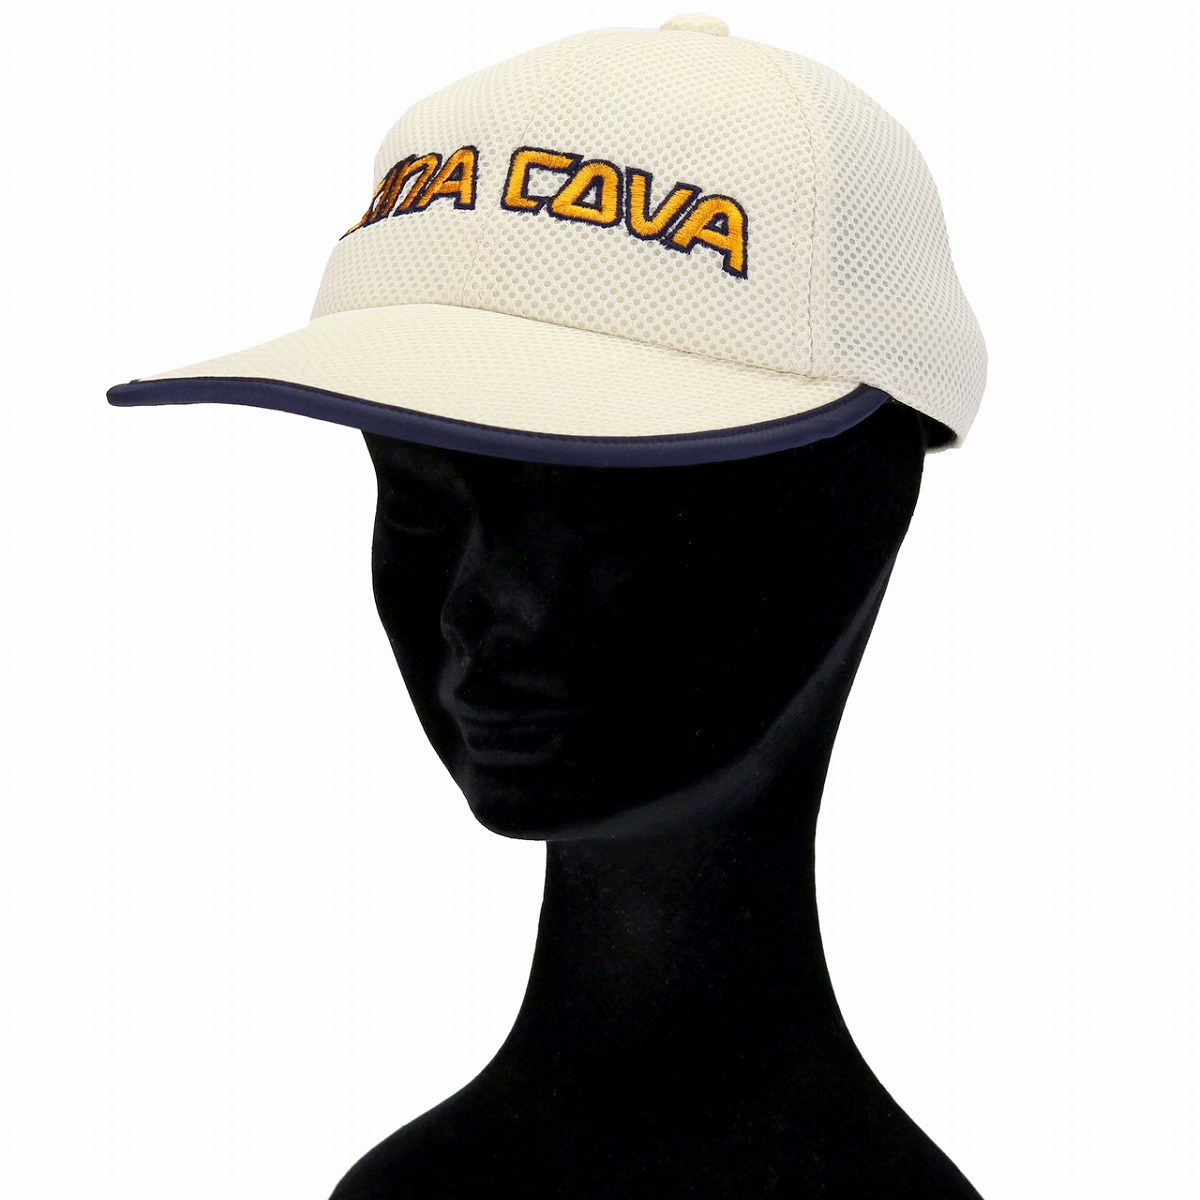 Niceness spring and summer person sensitive to heat cap heat stroke measures awning China Koba baseball cap logo cap sports / white off-white [baseball cap] that there is product made in SINACOVA mesh cap bell oasis water absorption domestic production h